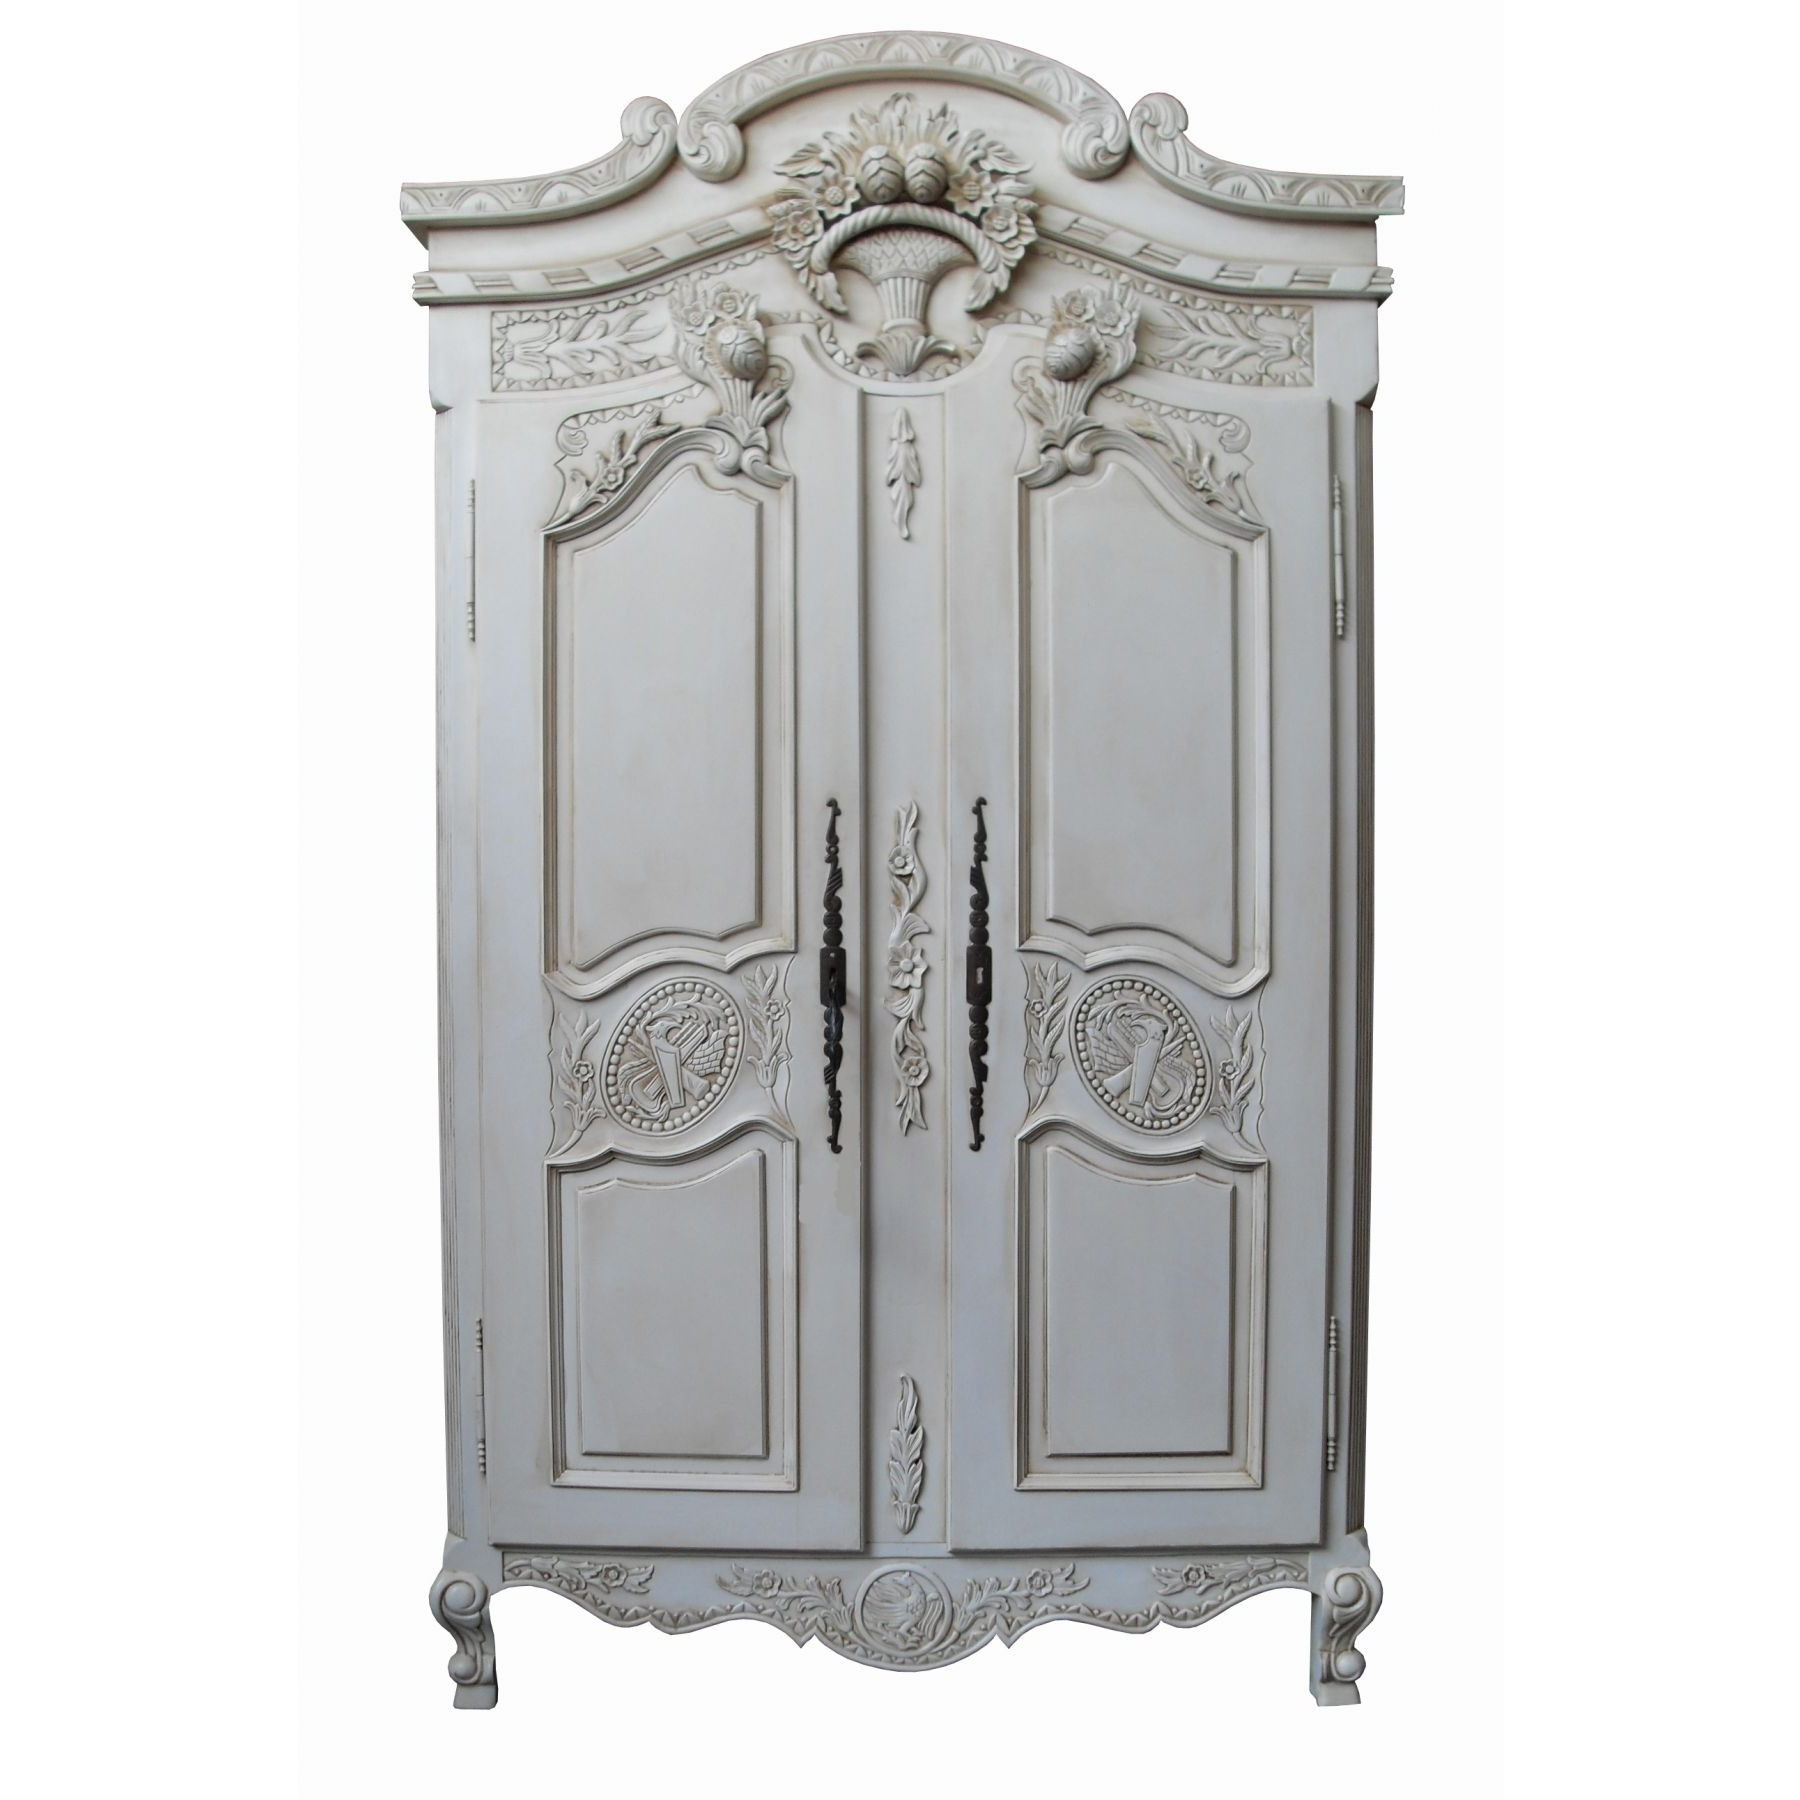 Rococo Wardrobes Regarding Most Current Antique French Wardrobe (View 9 of 15)